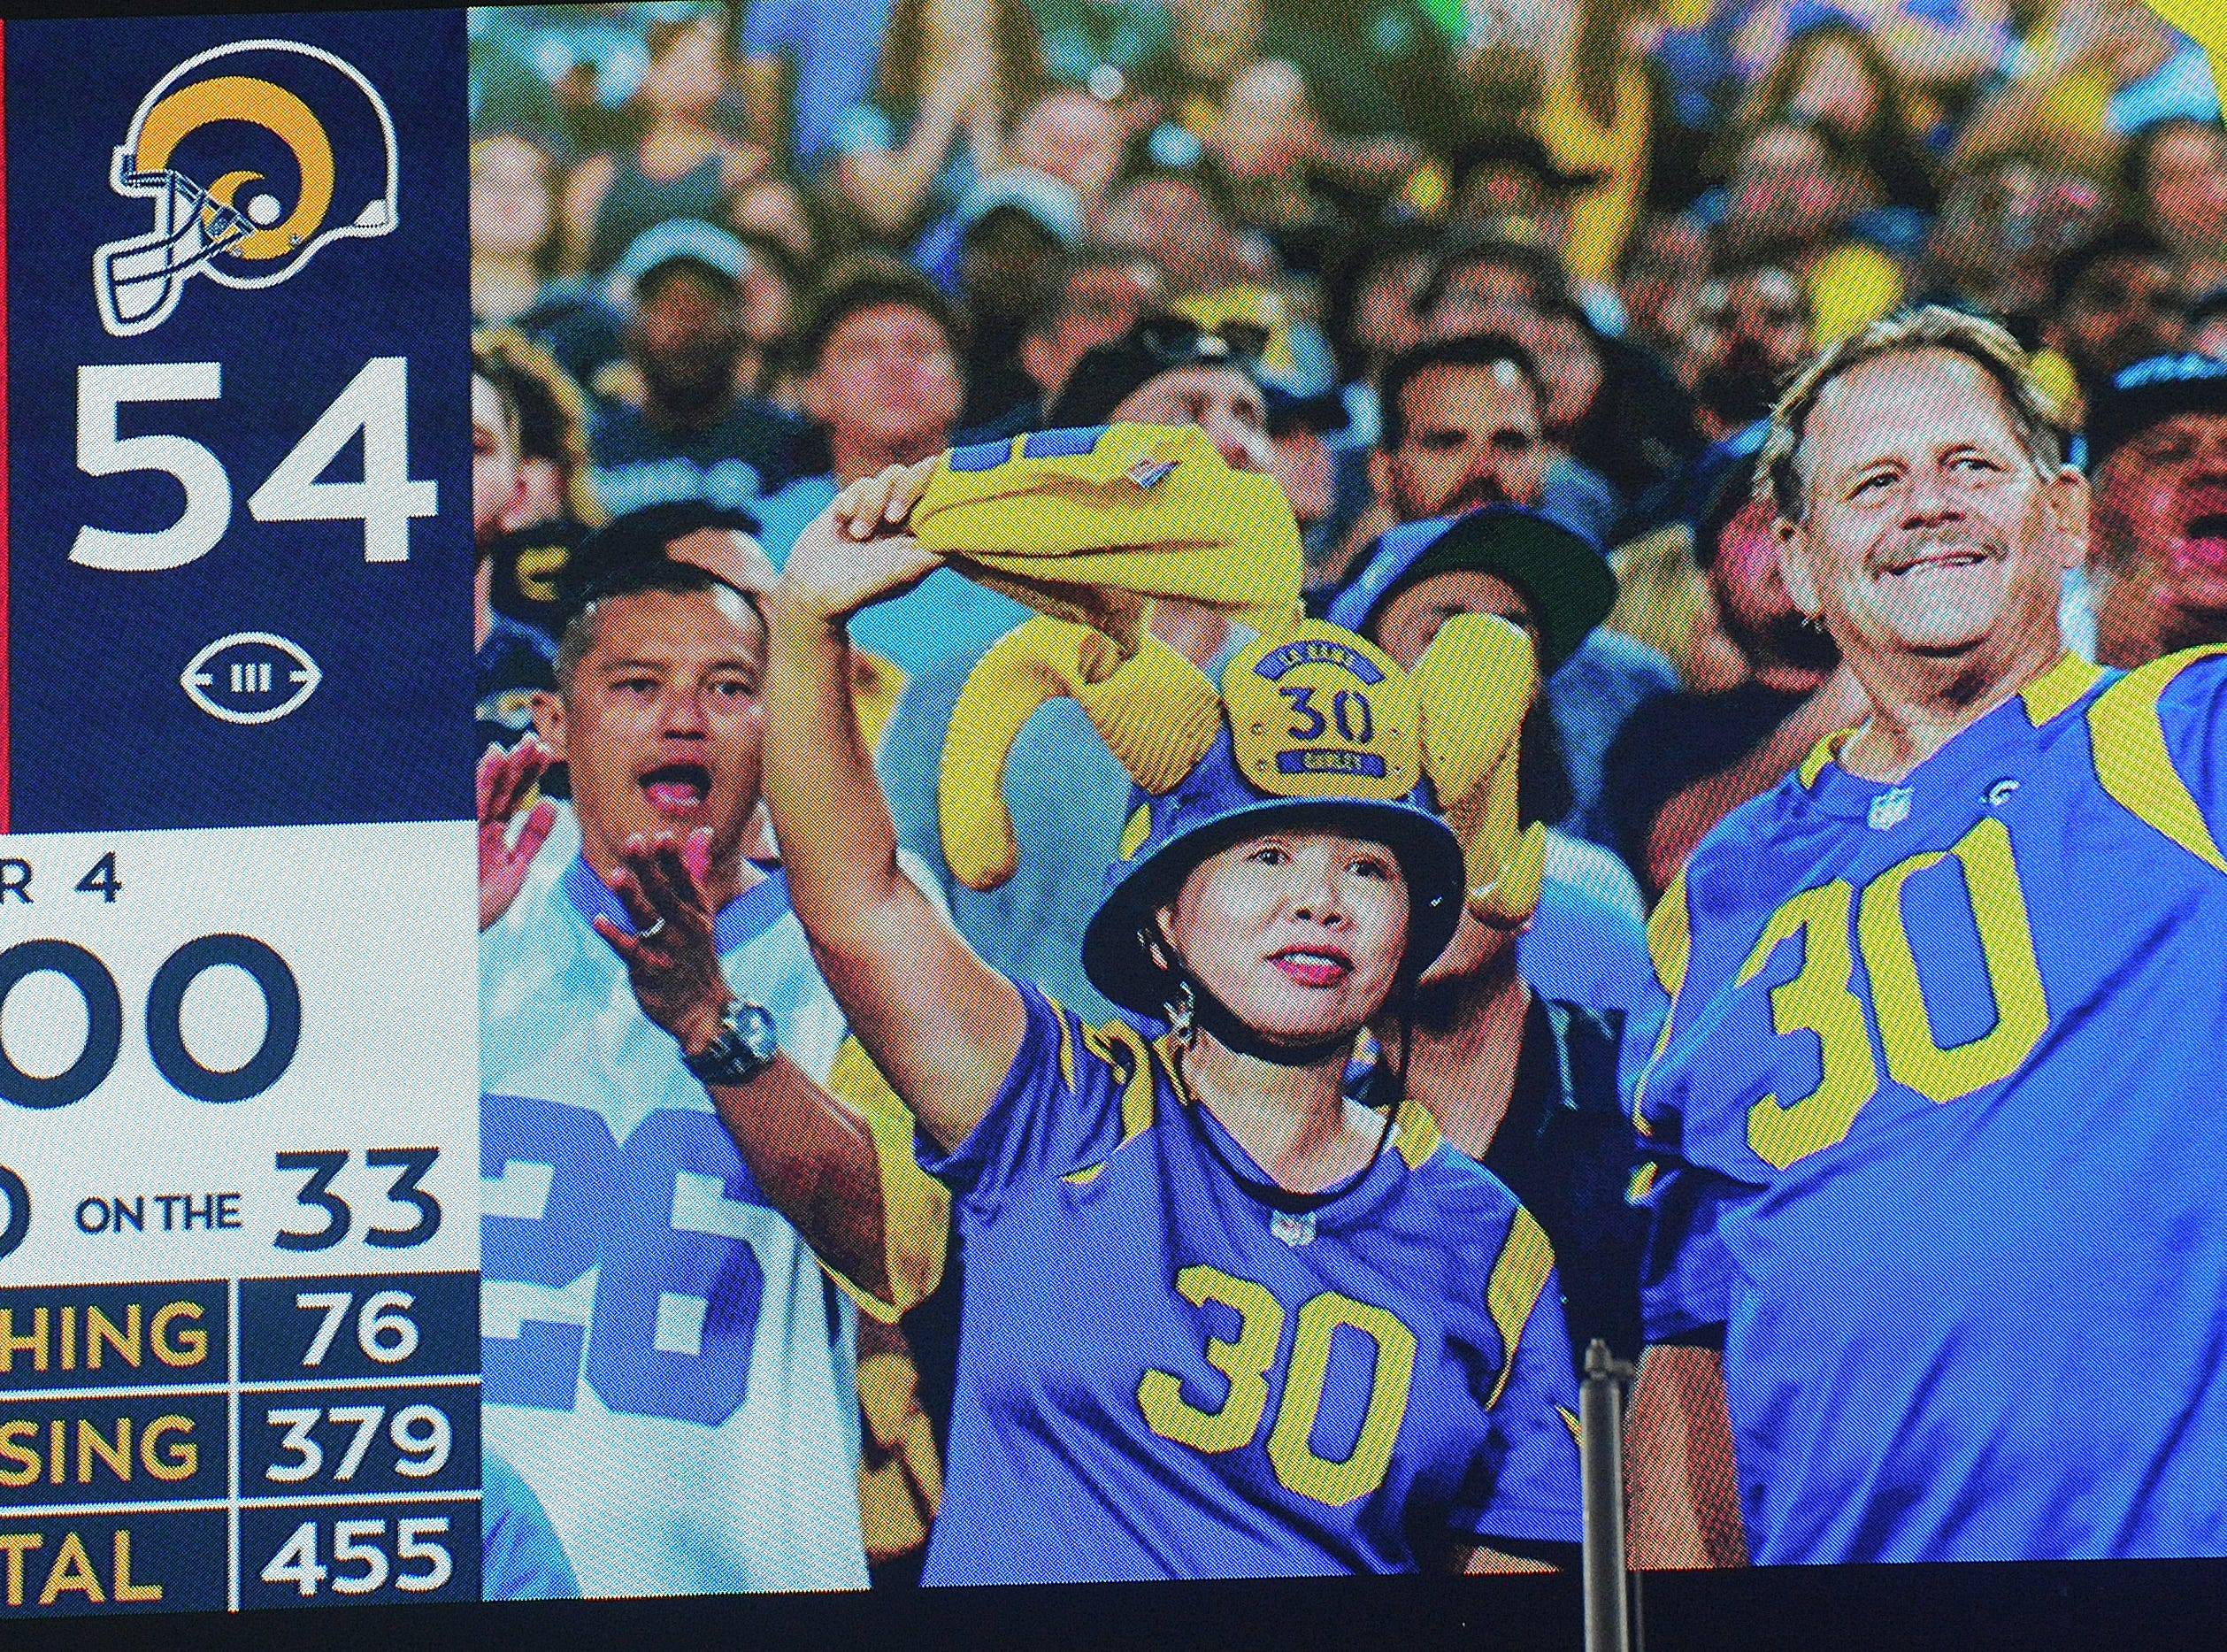 The scoreboard says it all. The Rams won by a score of 54-51 on Monday night. The combined 105 points is the third-highest-scoring NFL game in history and it marked the only time that two teams ever scored more the 50 points in the same game.